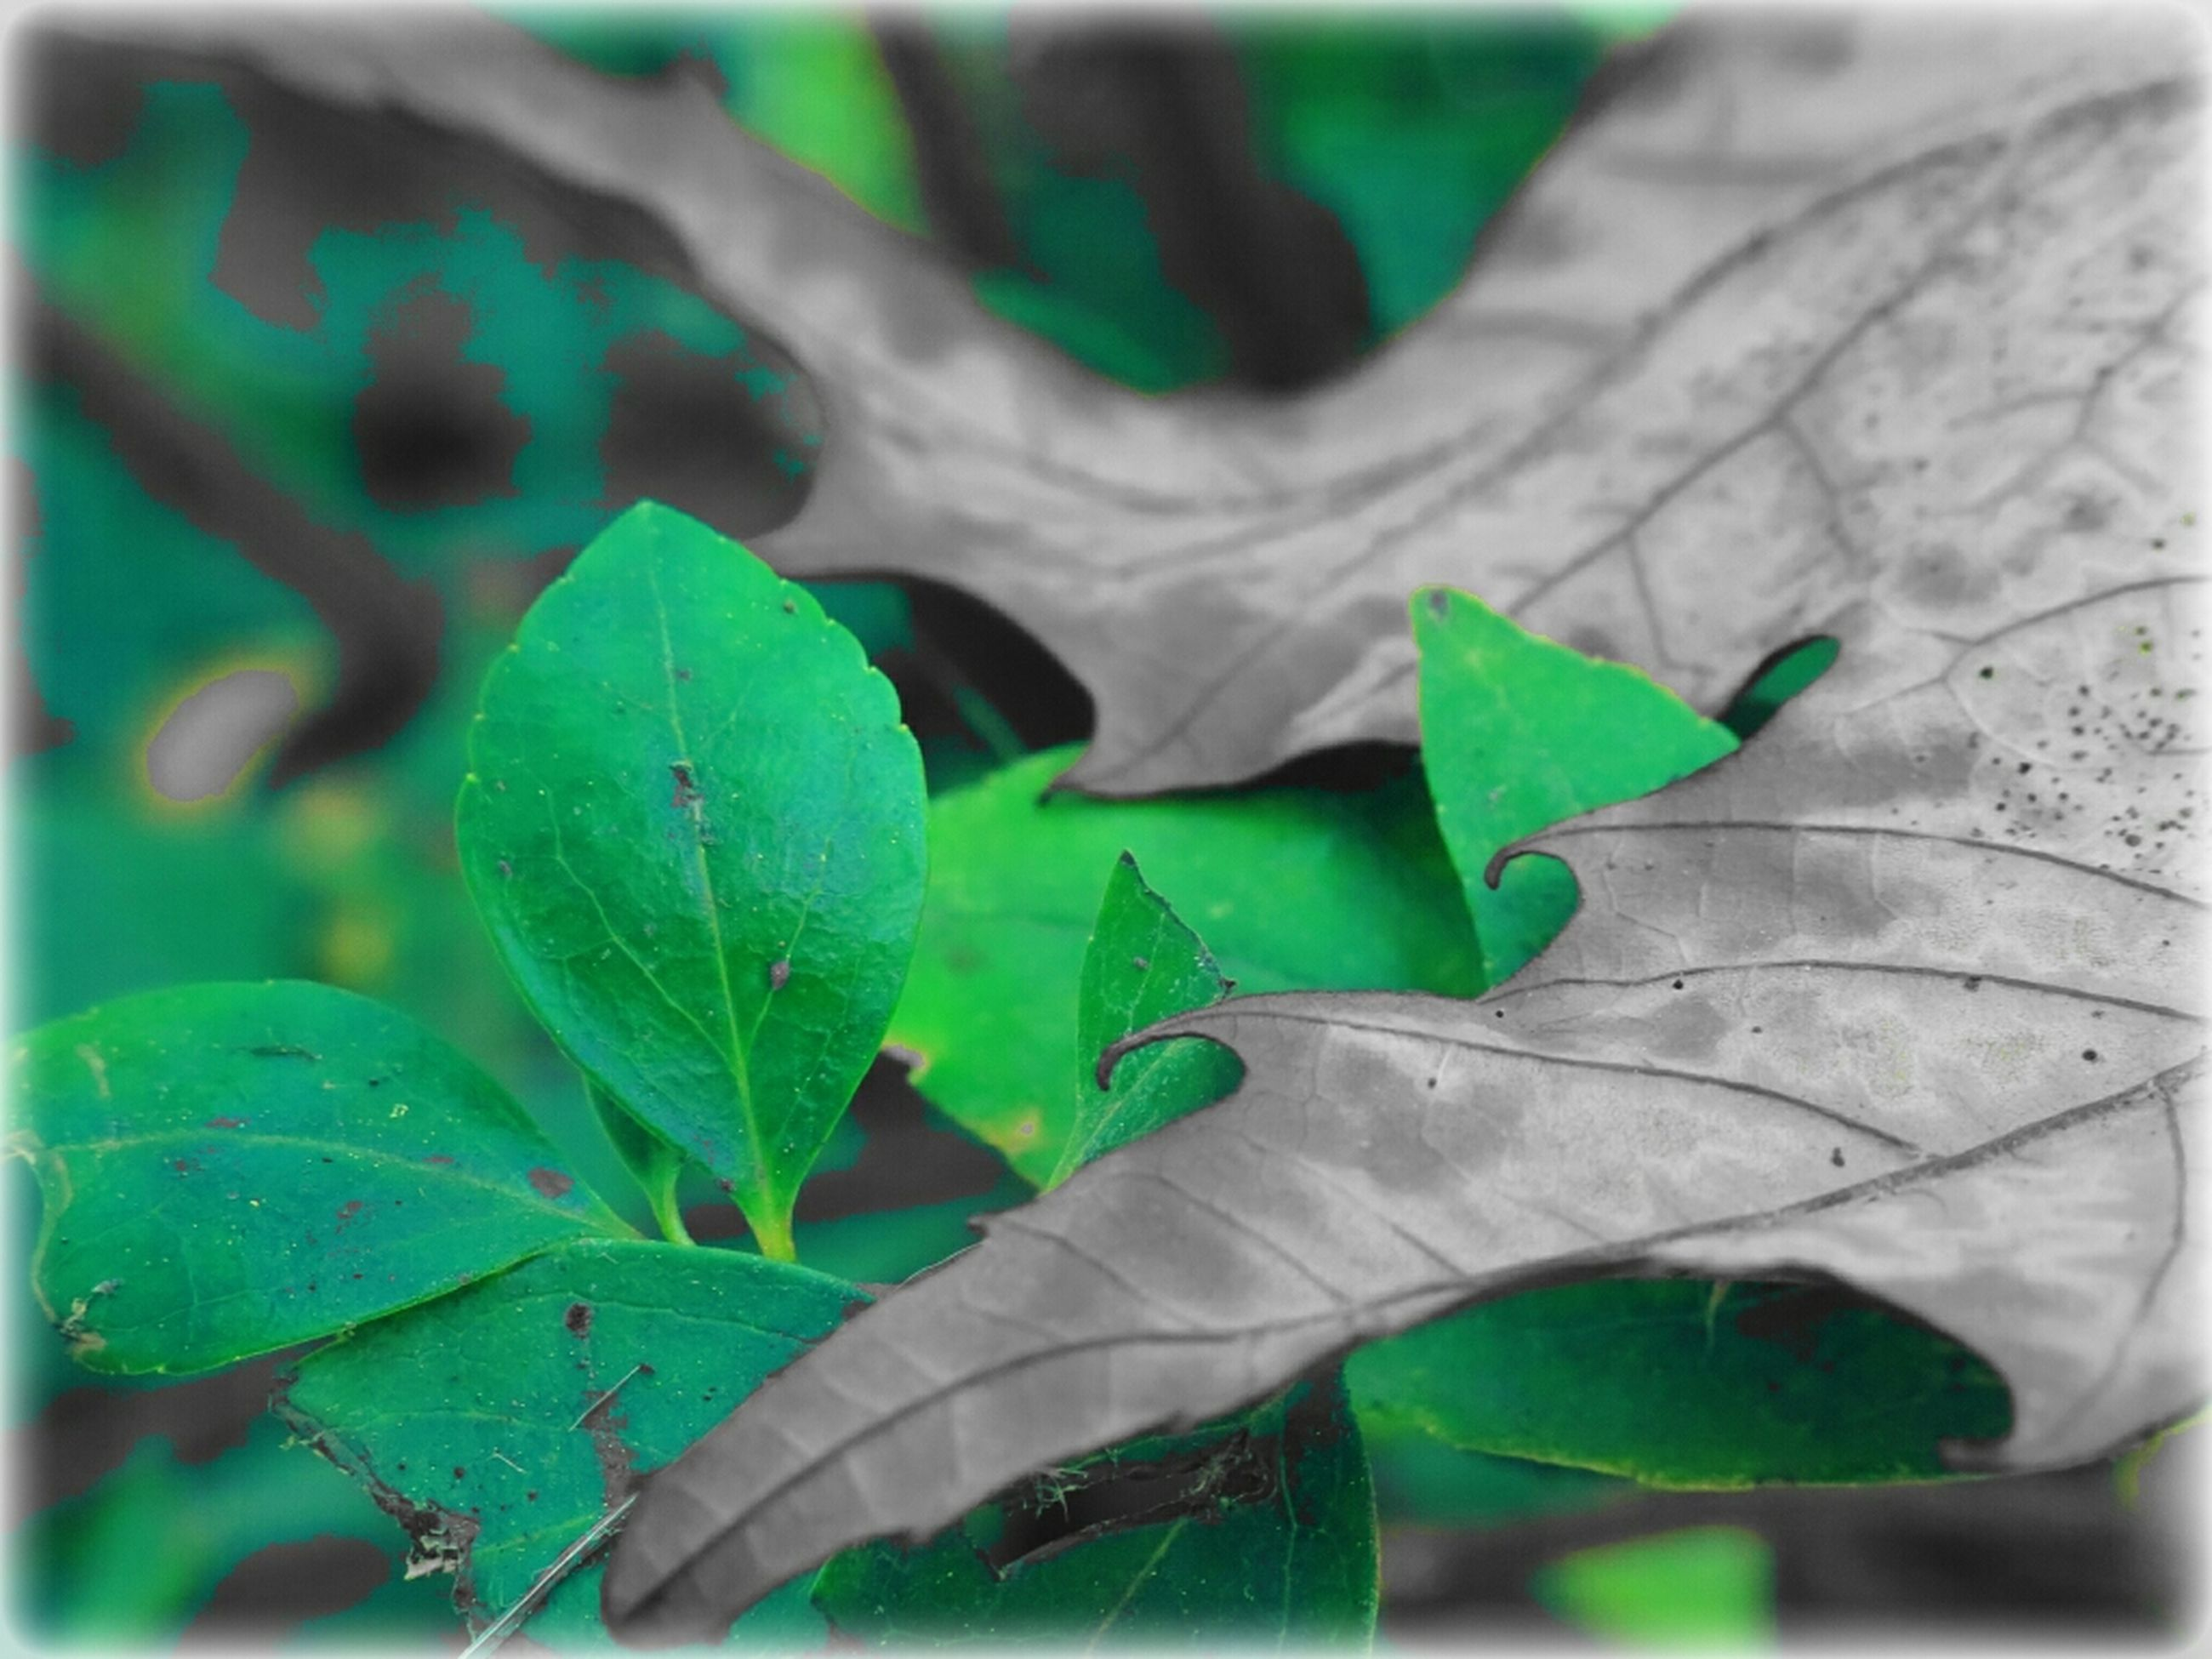 leaf, leaf vein, green color, close-up, focus on foreground, plant, leaves, nature, growth, selective focus, natural pattern, auto post production filter, transfer print, green, beauty in nature, outdoors, day, no people, fragility, high angle view